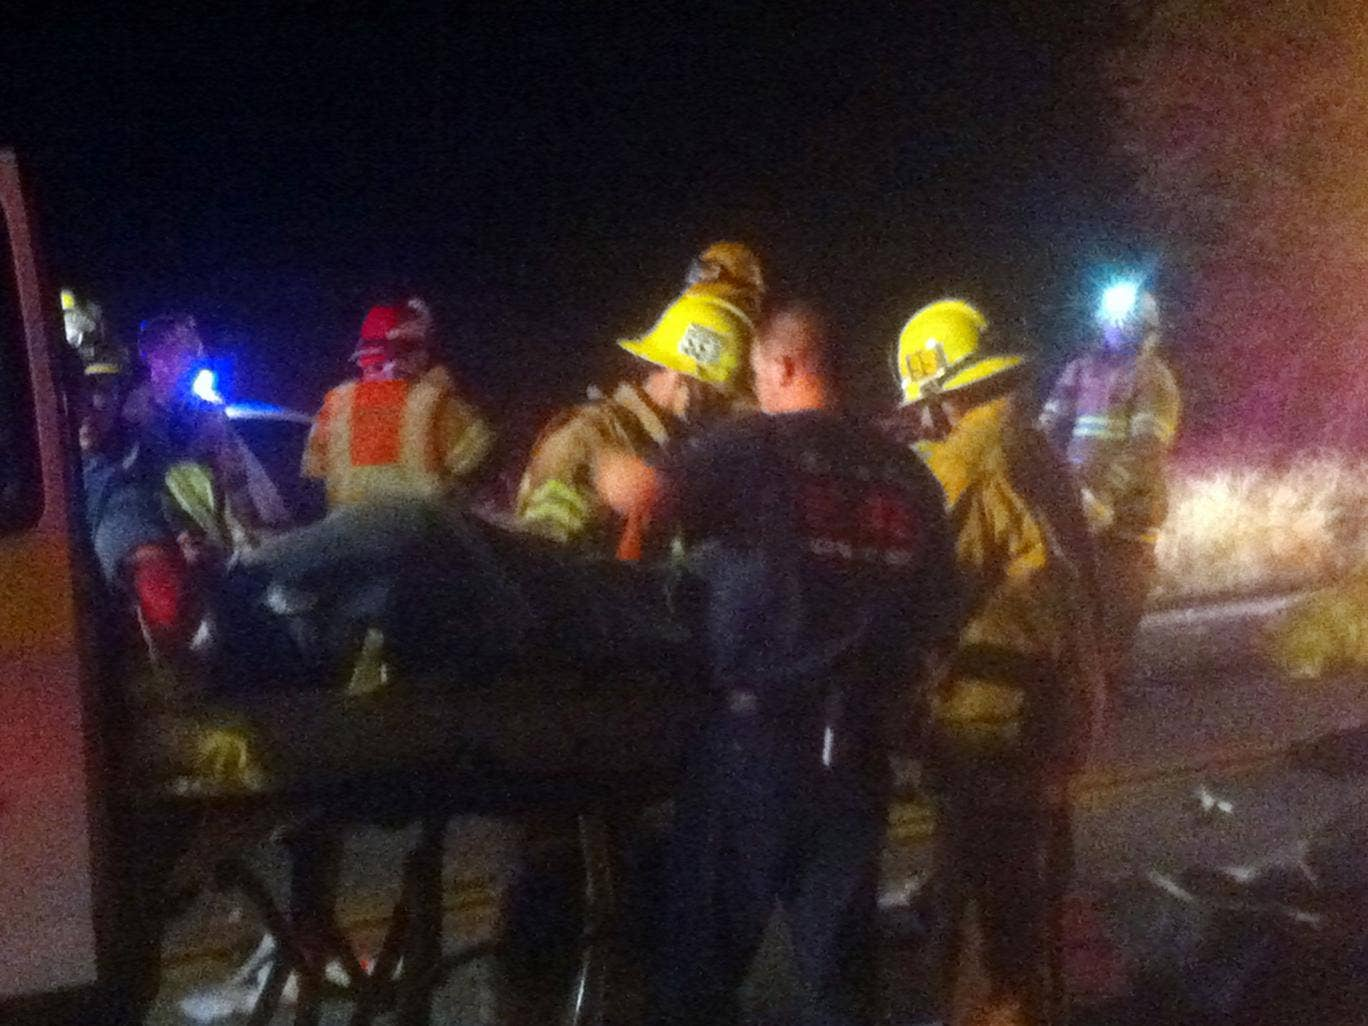 Emergency personnel assist victims at the scene of the bus crash near Forest Falls